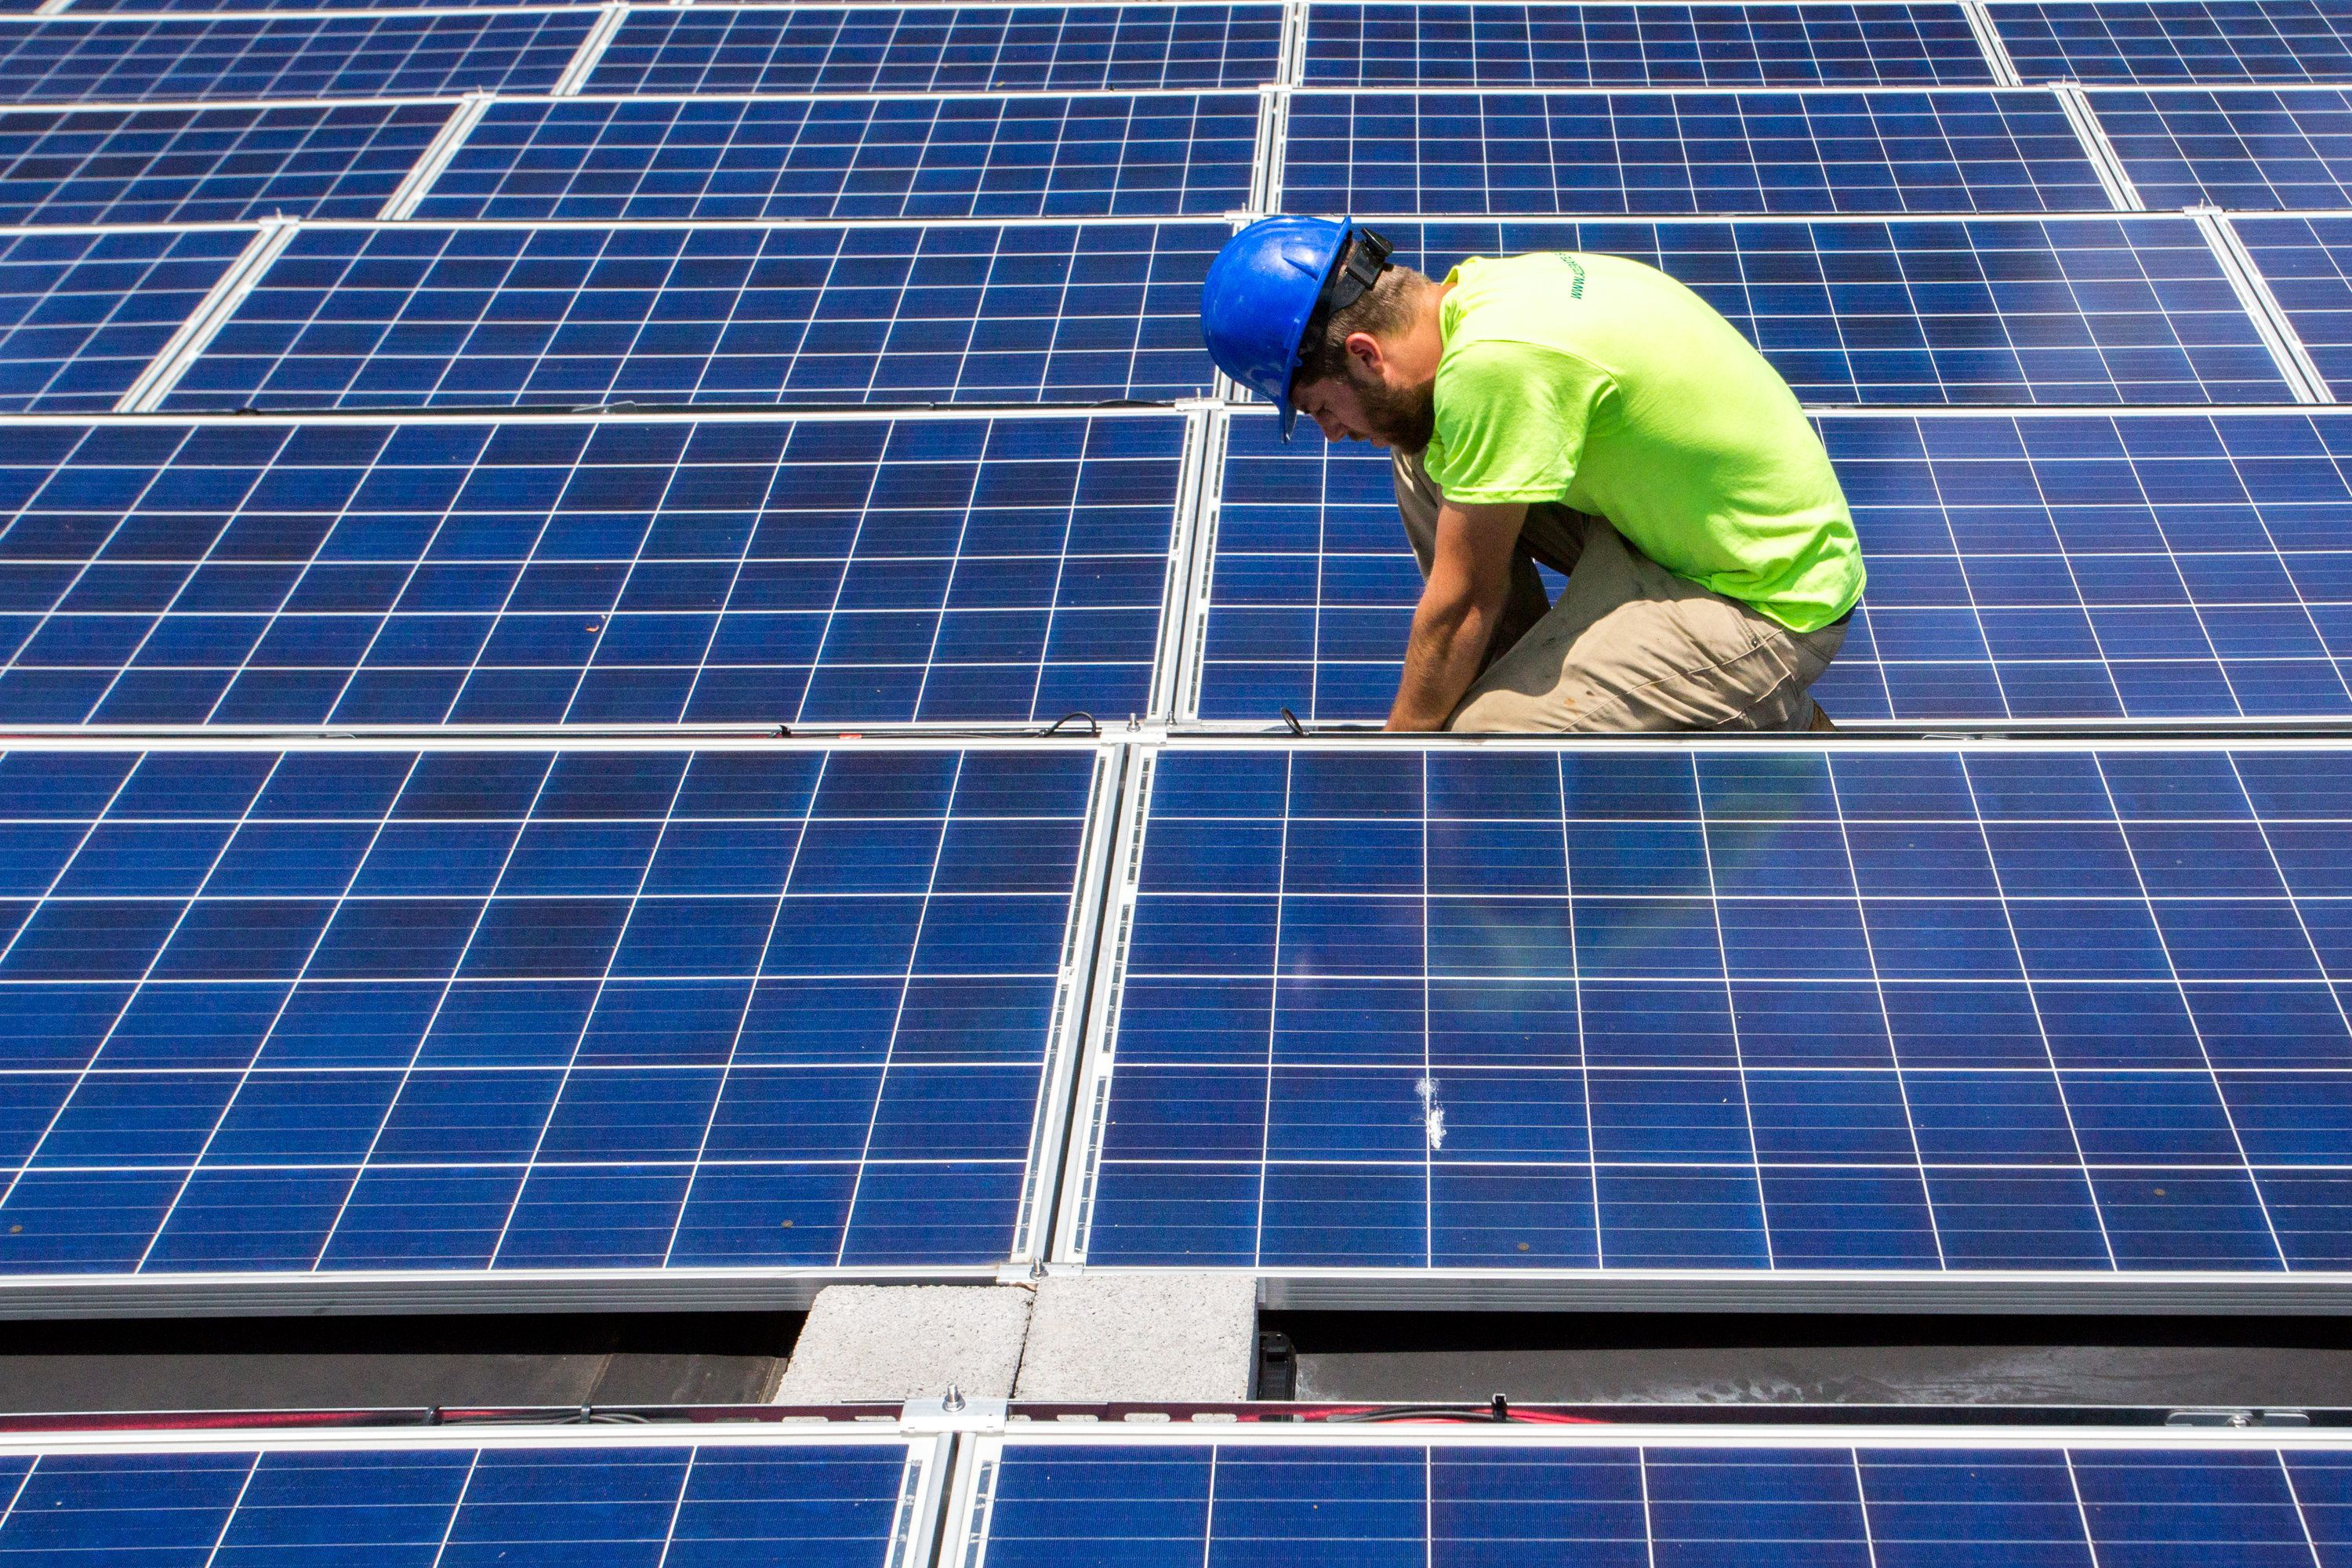 CHARLOTTE NC - June 2, 2017: CREDIT: Mike Catanzaro, panel installer at Accelerate Solar, finishes installed electrical wiring at a solar array he recently installed at a job site in East Charlotte. They are finishing up installing a solar panel array at the Aurora Apartments to help offset electrical demand in certain buildings.  (Photo by Logan Cyrus for The Washington Post via Getty Images)